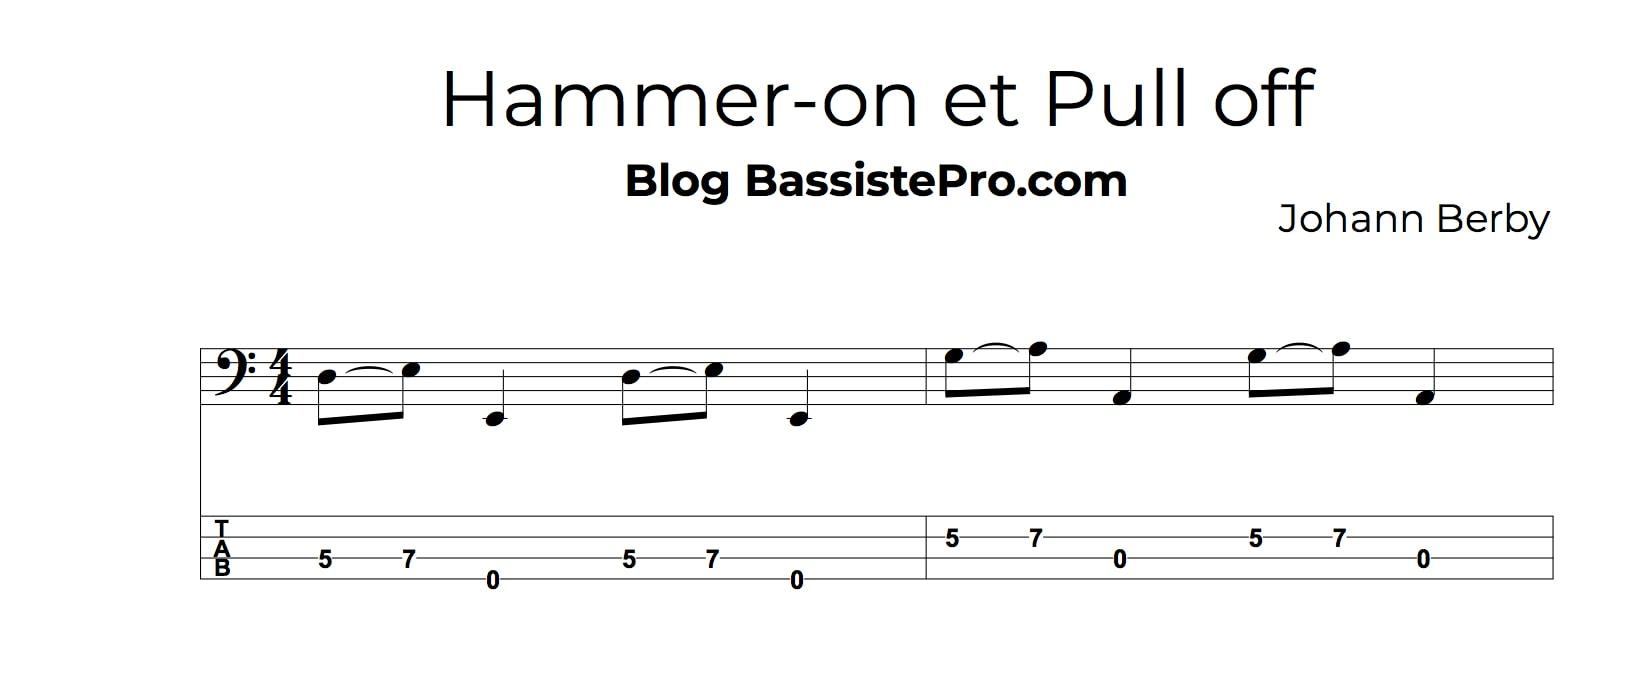 technique hammer-on et pull off - hammer-on 1